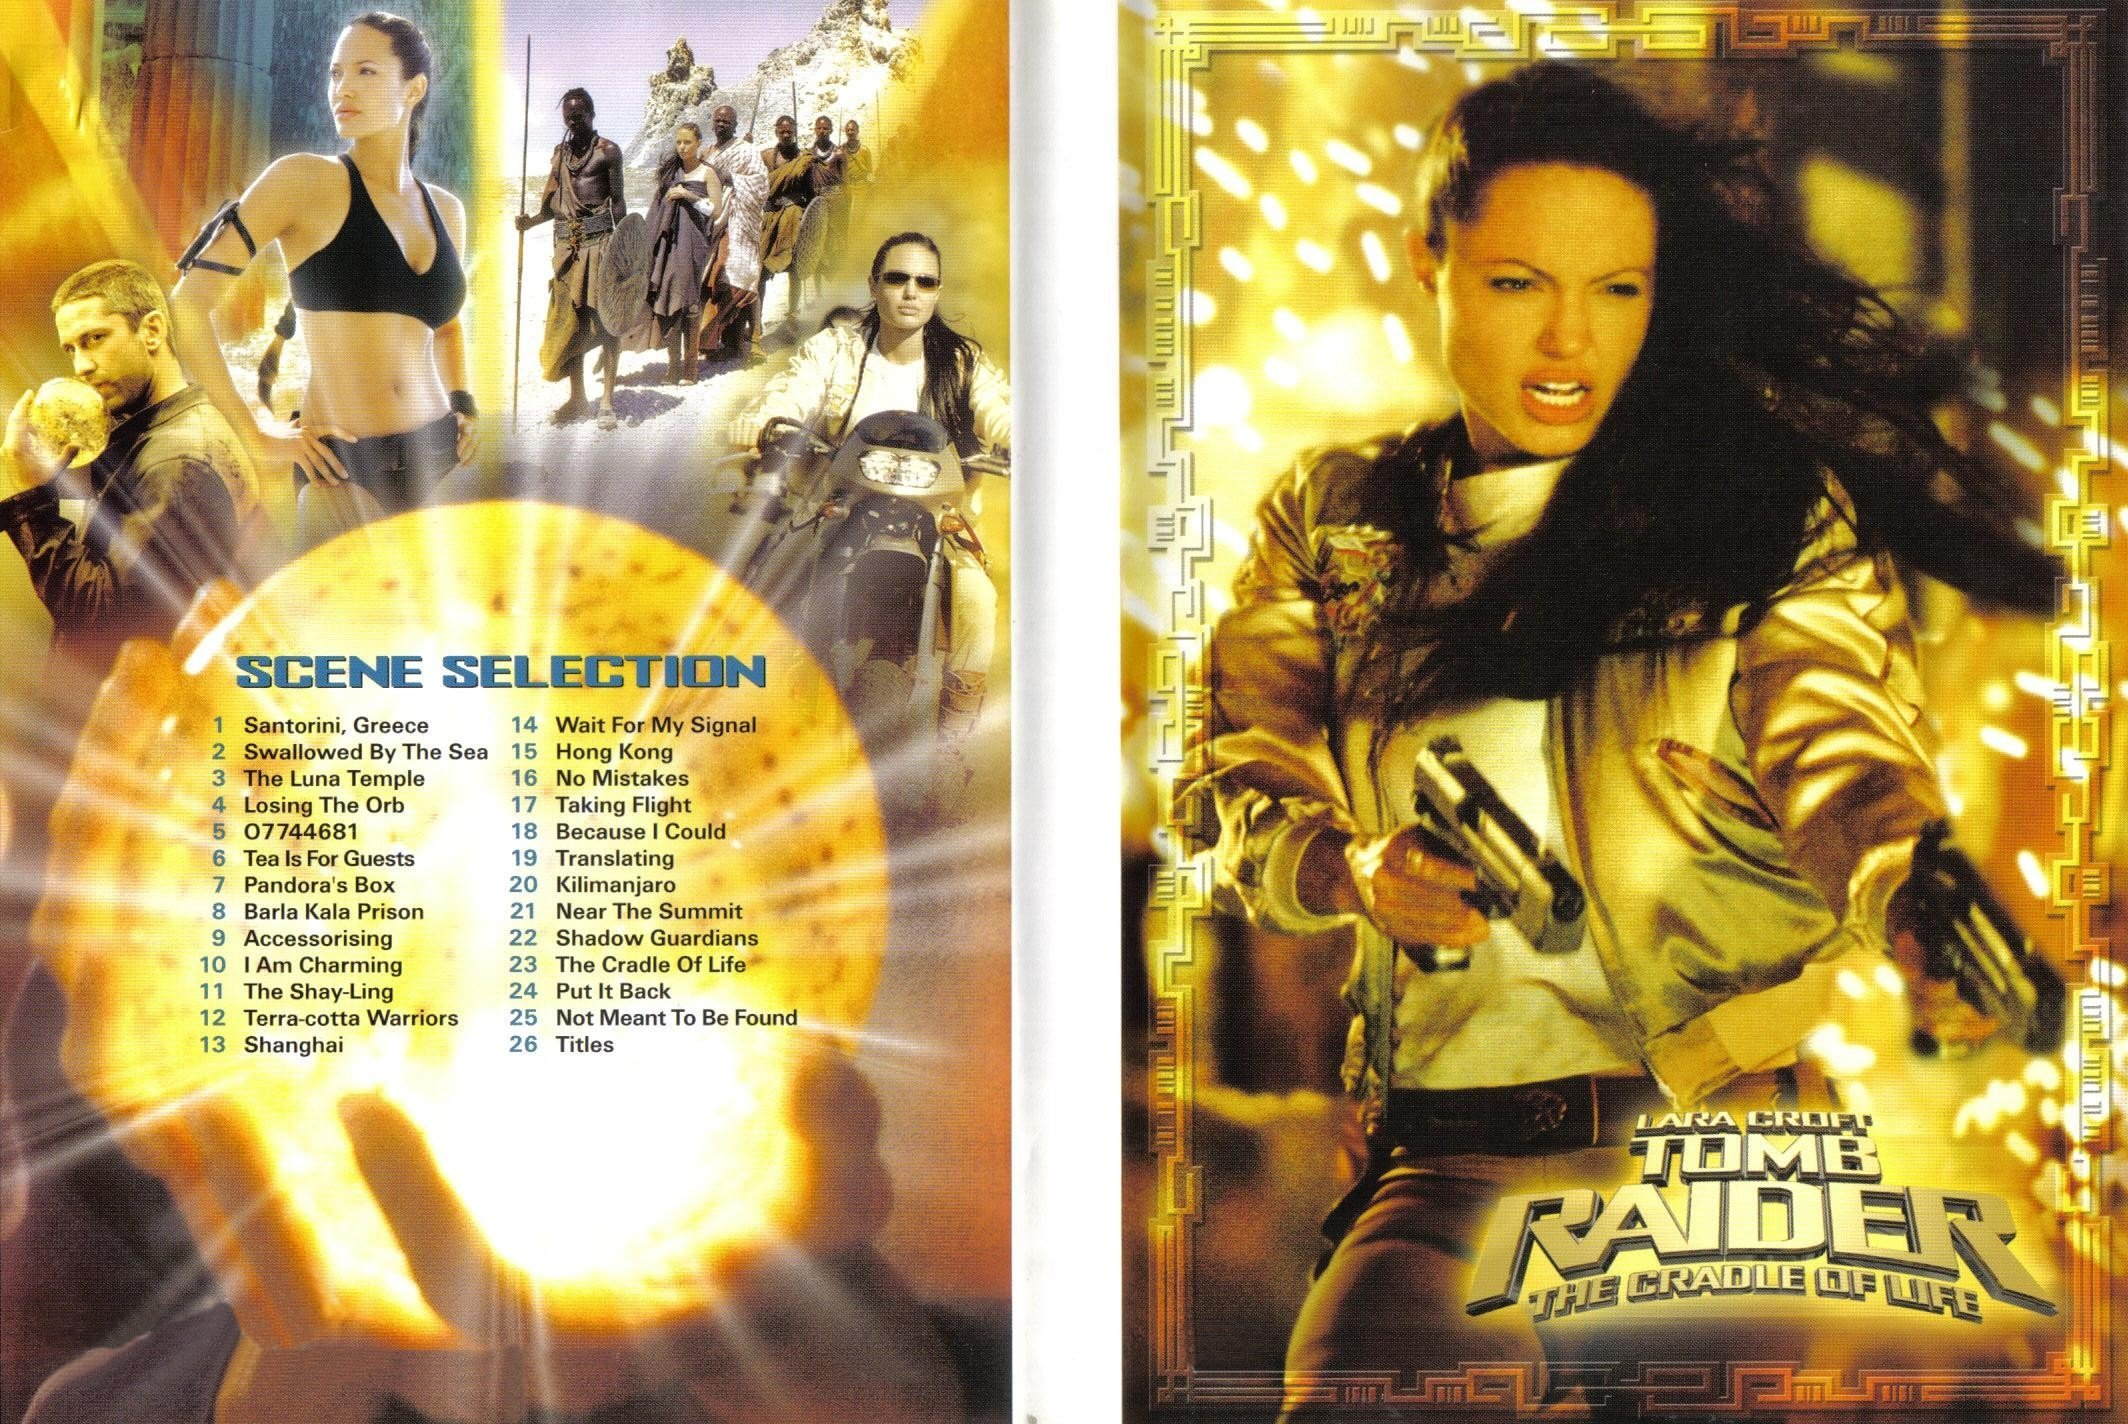 Covers Box Sk Lara Croft Tomb Raider 2 The Cradle Of Life 2003 High Quality Dvd Blueray Movie